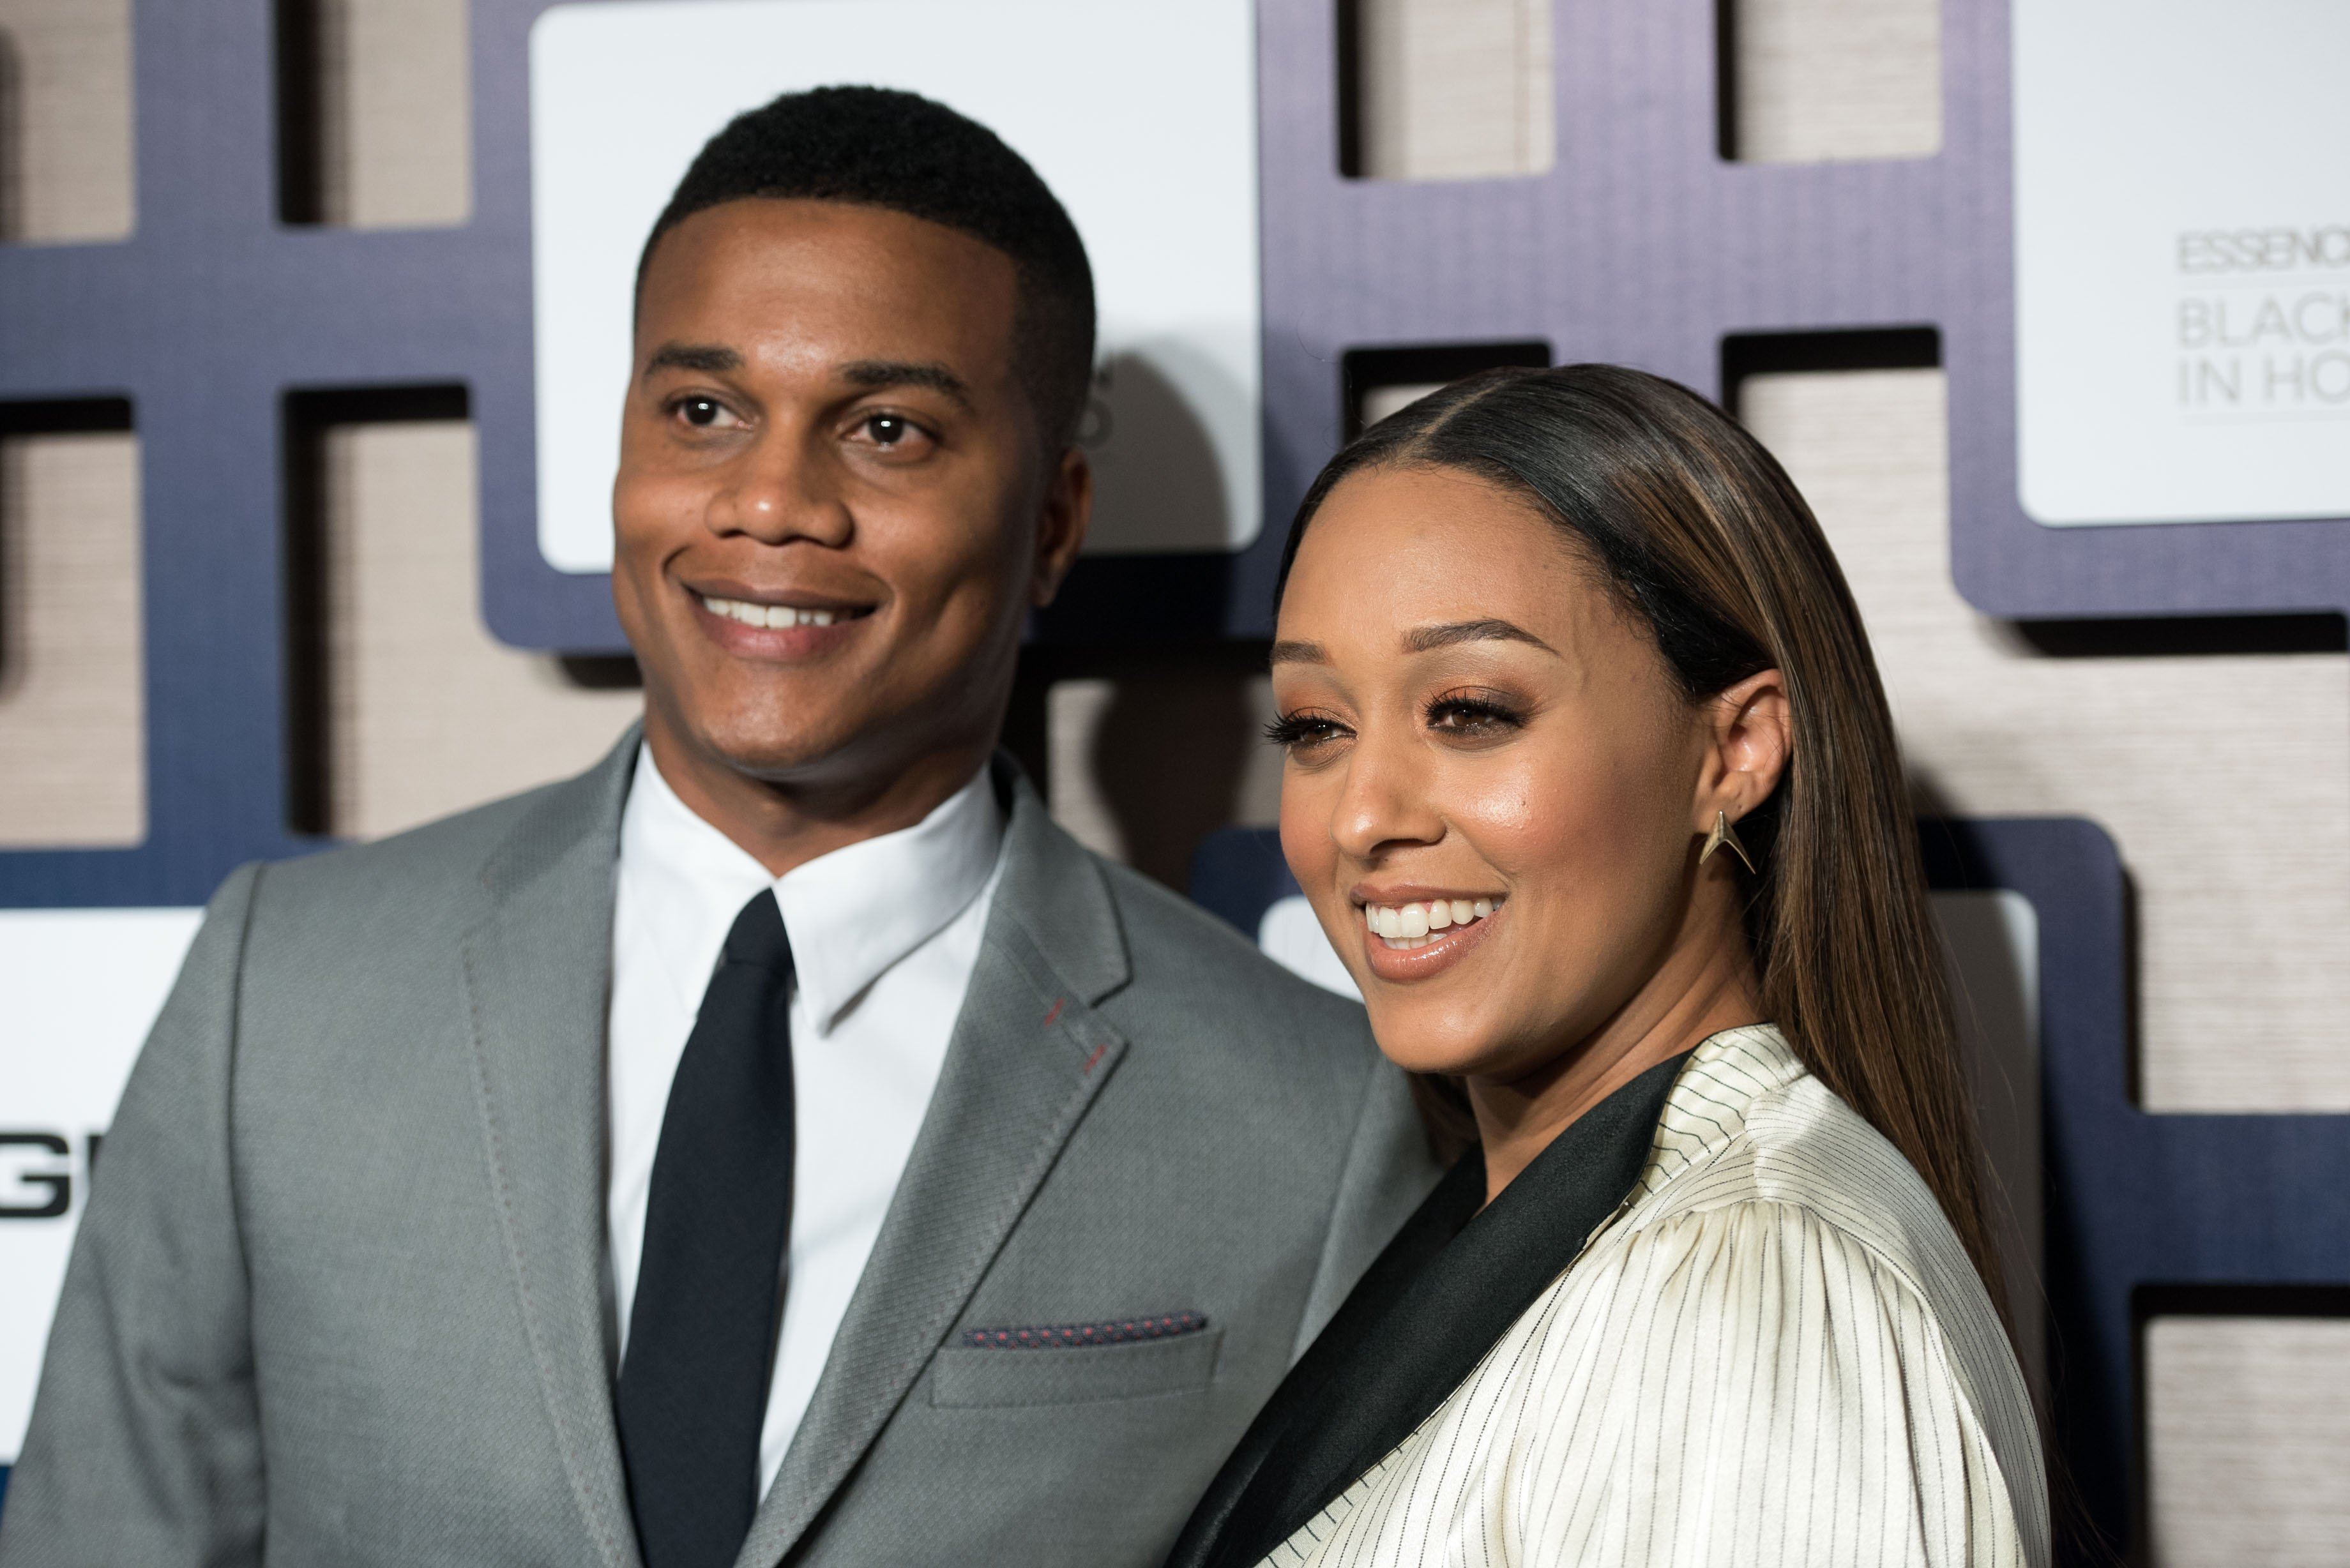 Cory Hardrict and Tia Mowry at the 8th Annual ESSENCE Black Women In Hollywood Luncheon on February 19, 2015, in Beverly Hills, California.   Source: Getty Images